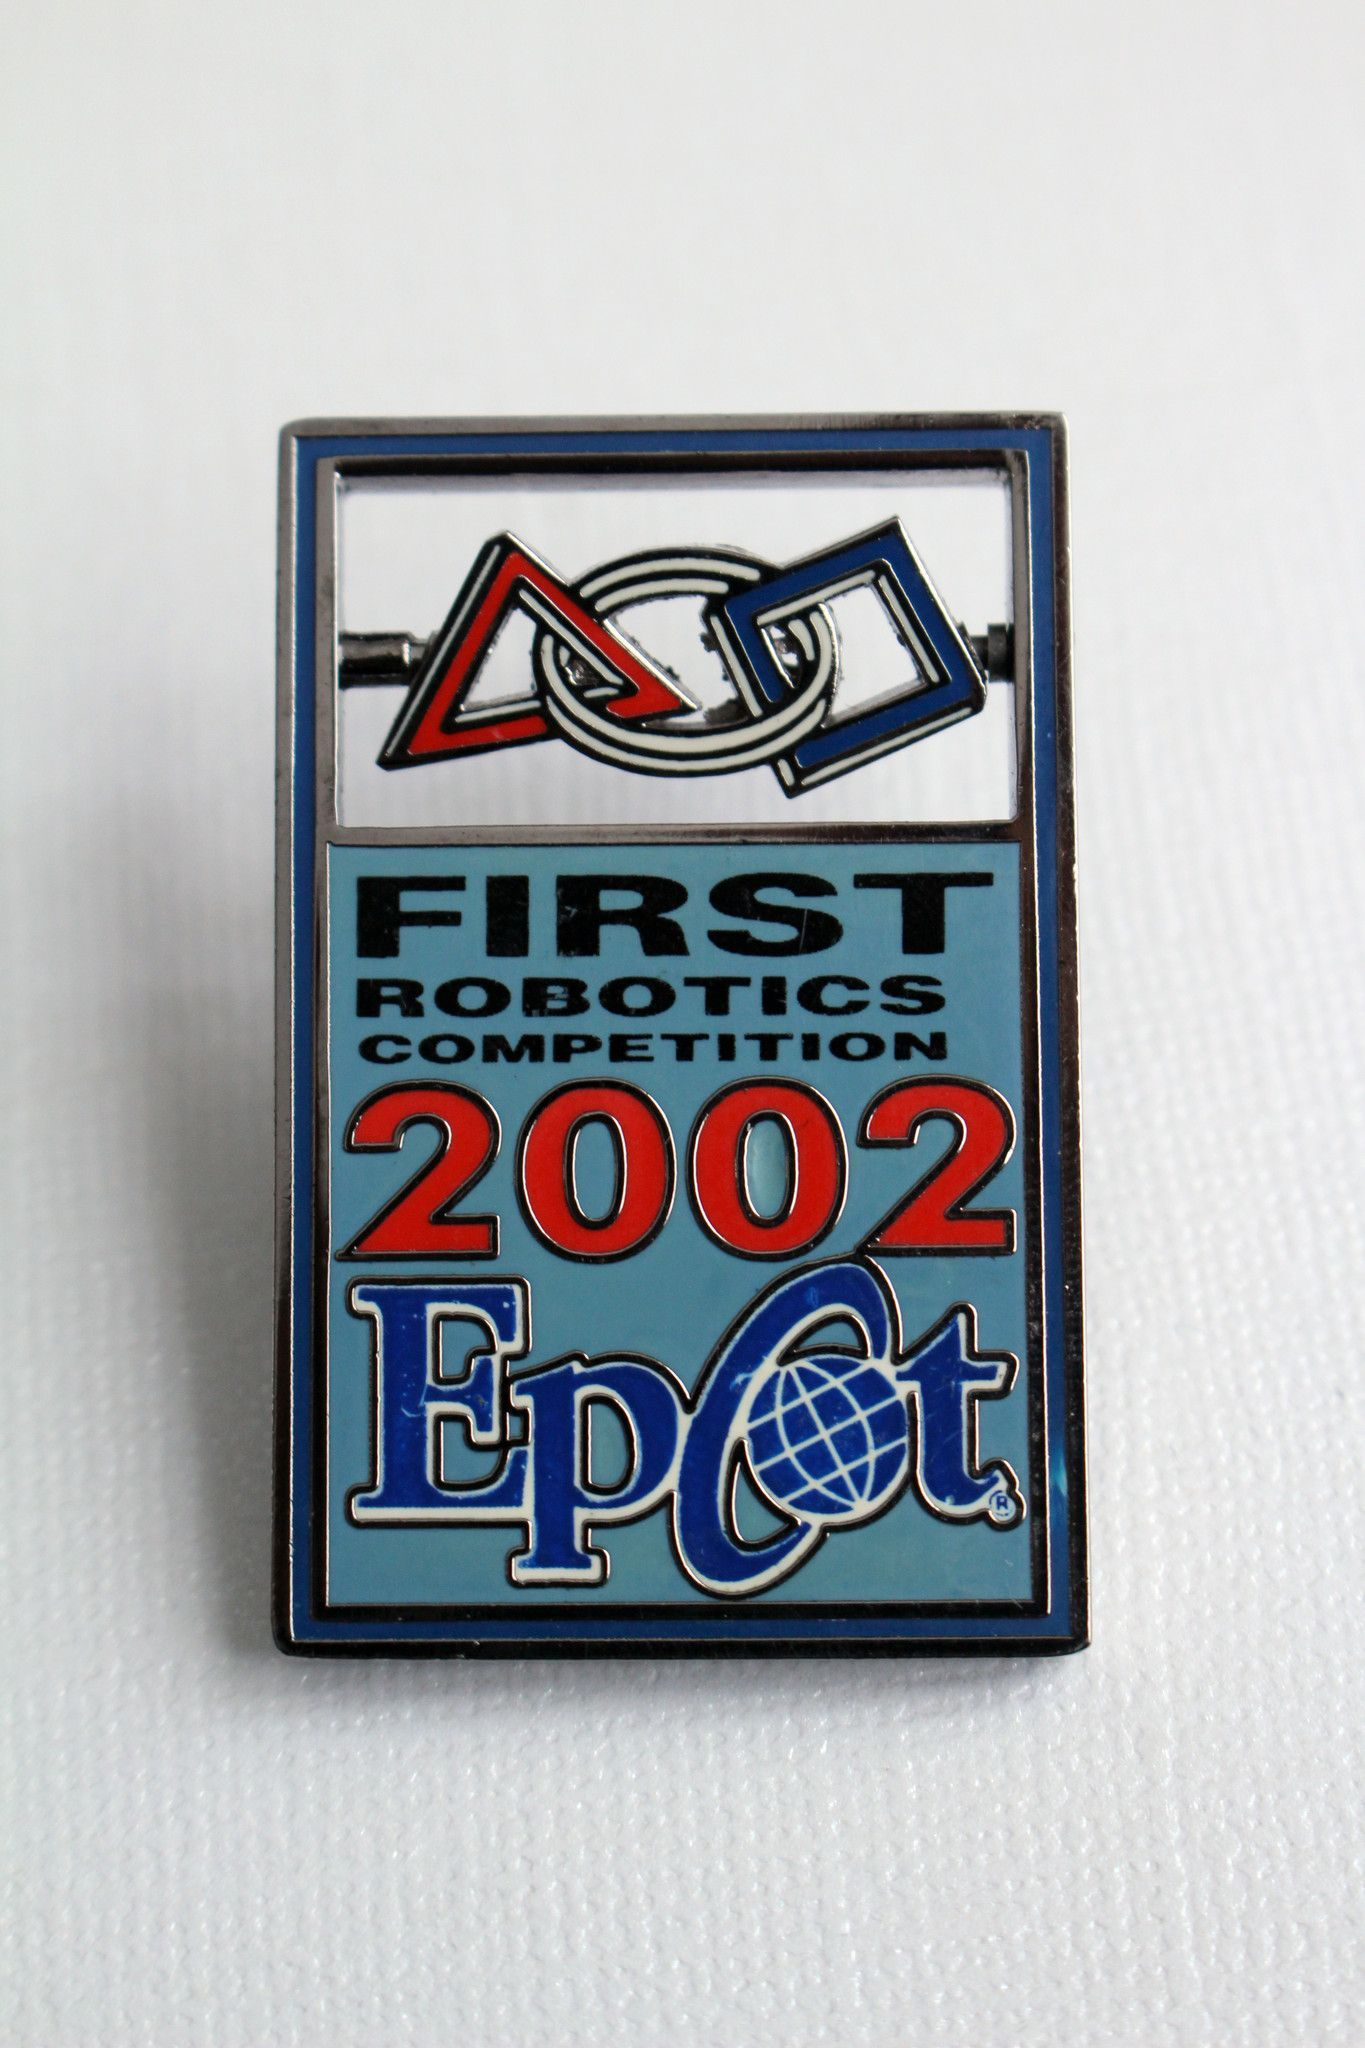 This Disney Pin Features The Logo For The First Robotics Competition